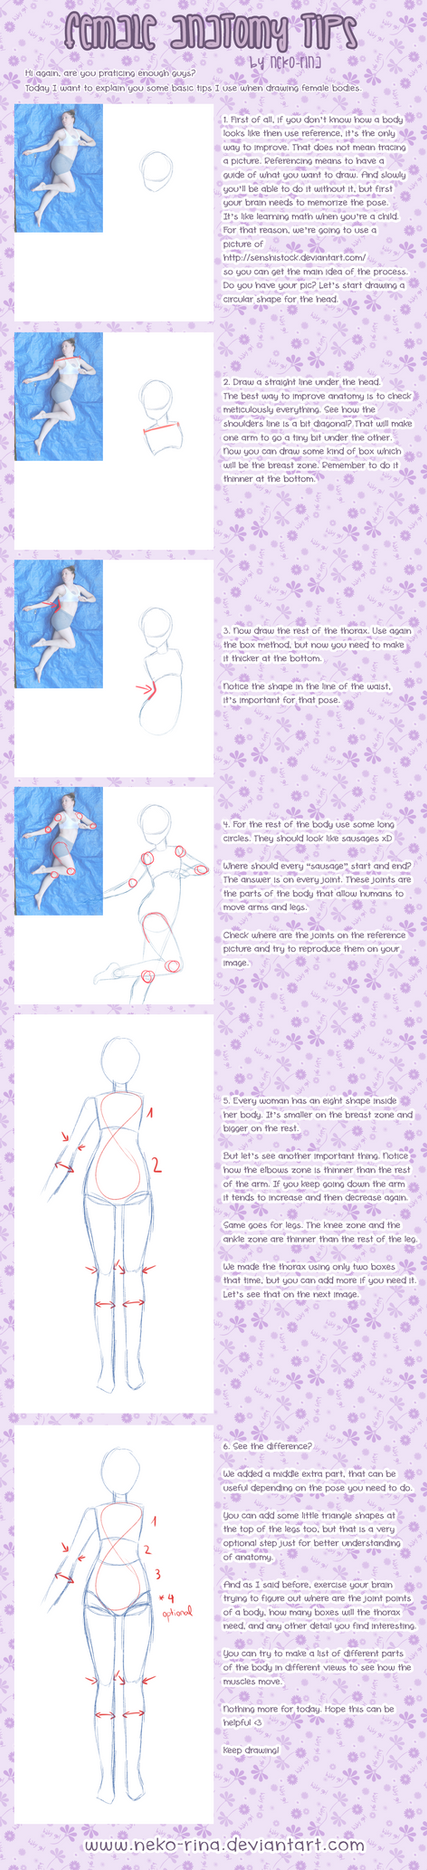 Female Anatomy Tips by Neko-Rina on DeviantArt